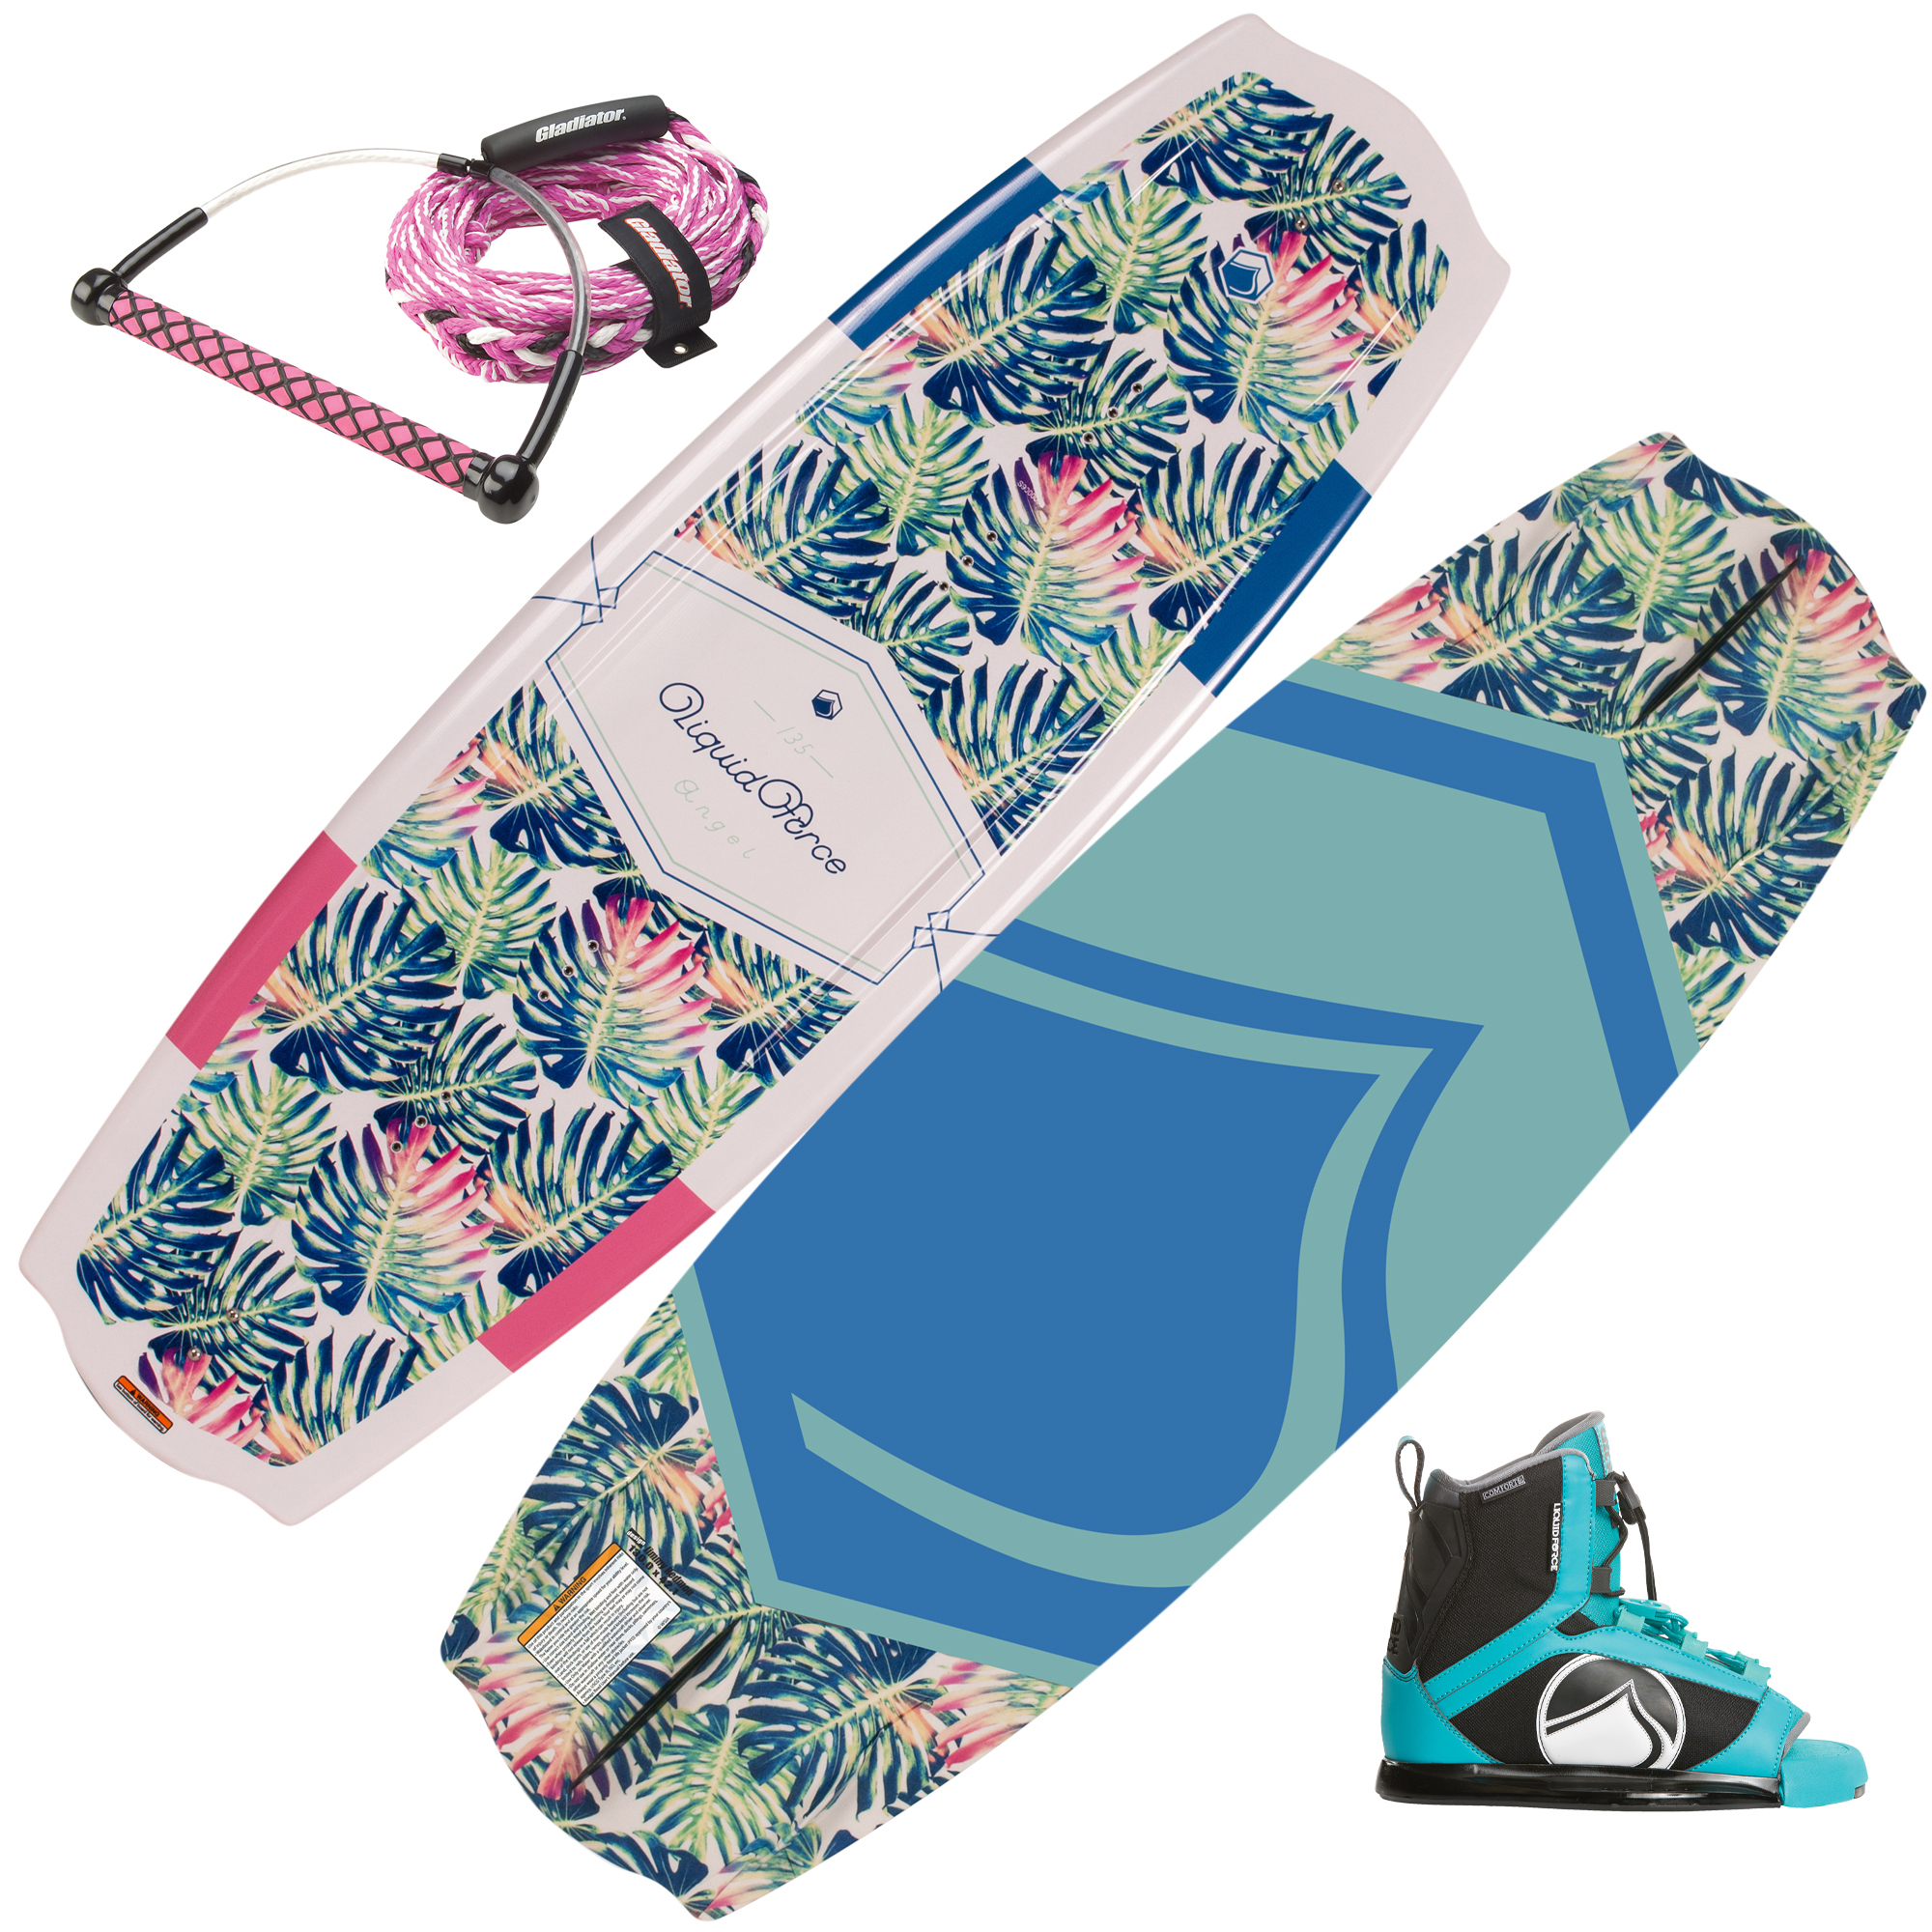 Liquid Force Angel Wakeboard With Plush Bindings, Handle, And Rope